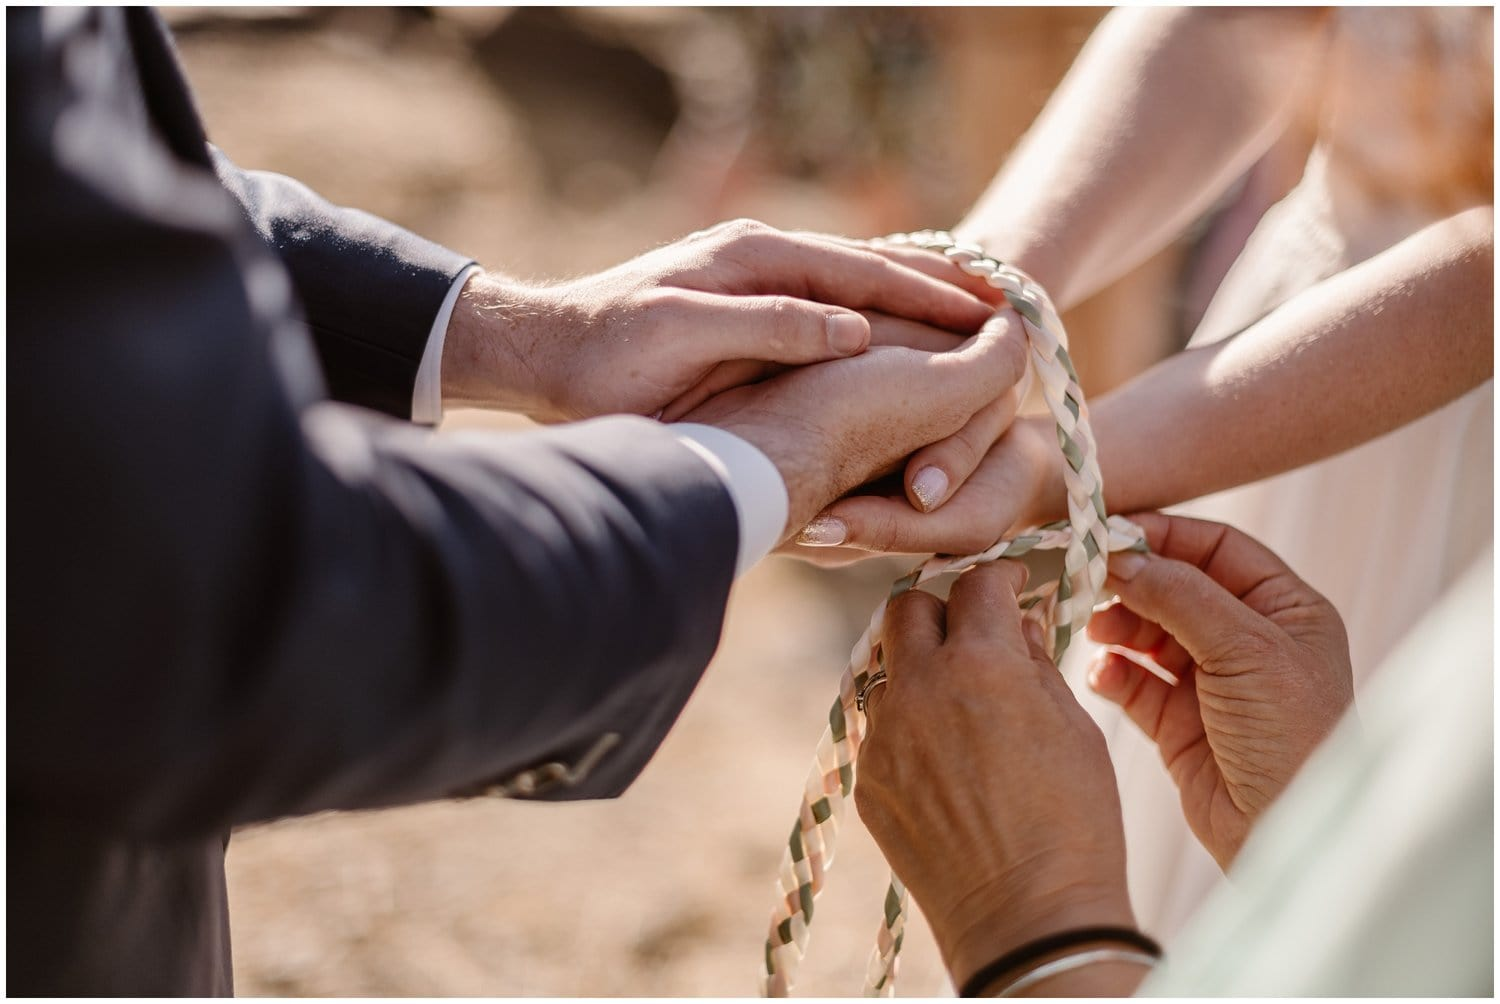 Close-up of rope being tied around bride and groom's hands during their elopement ceremony.